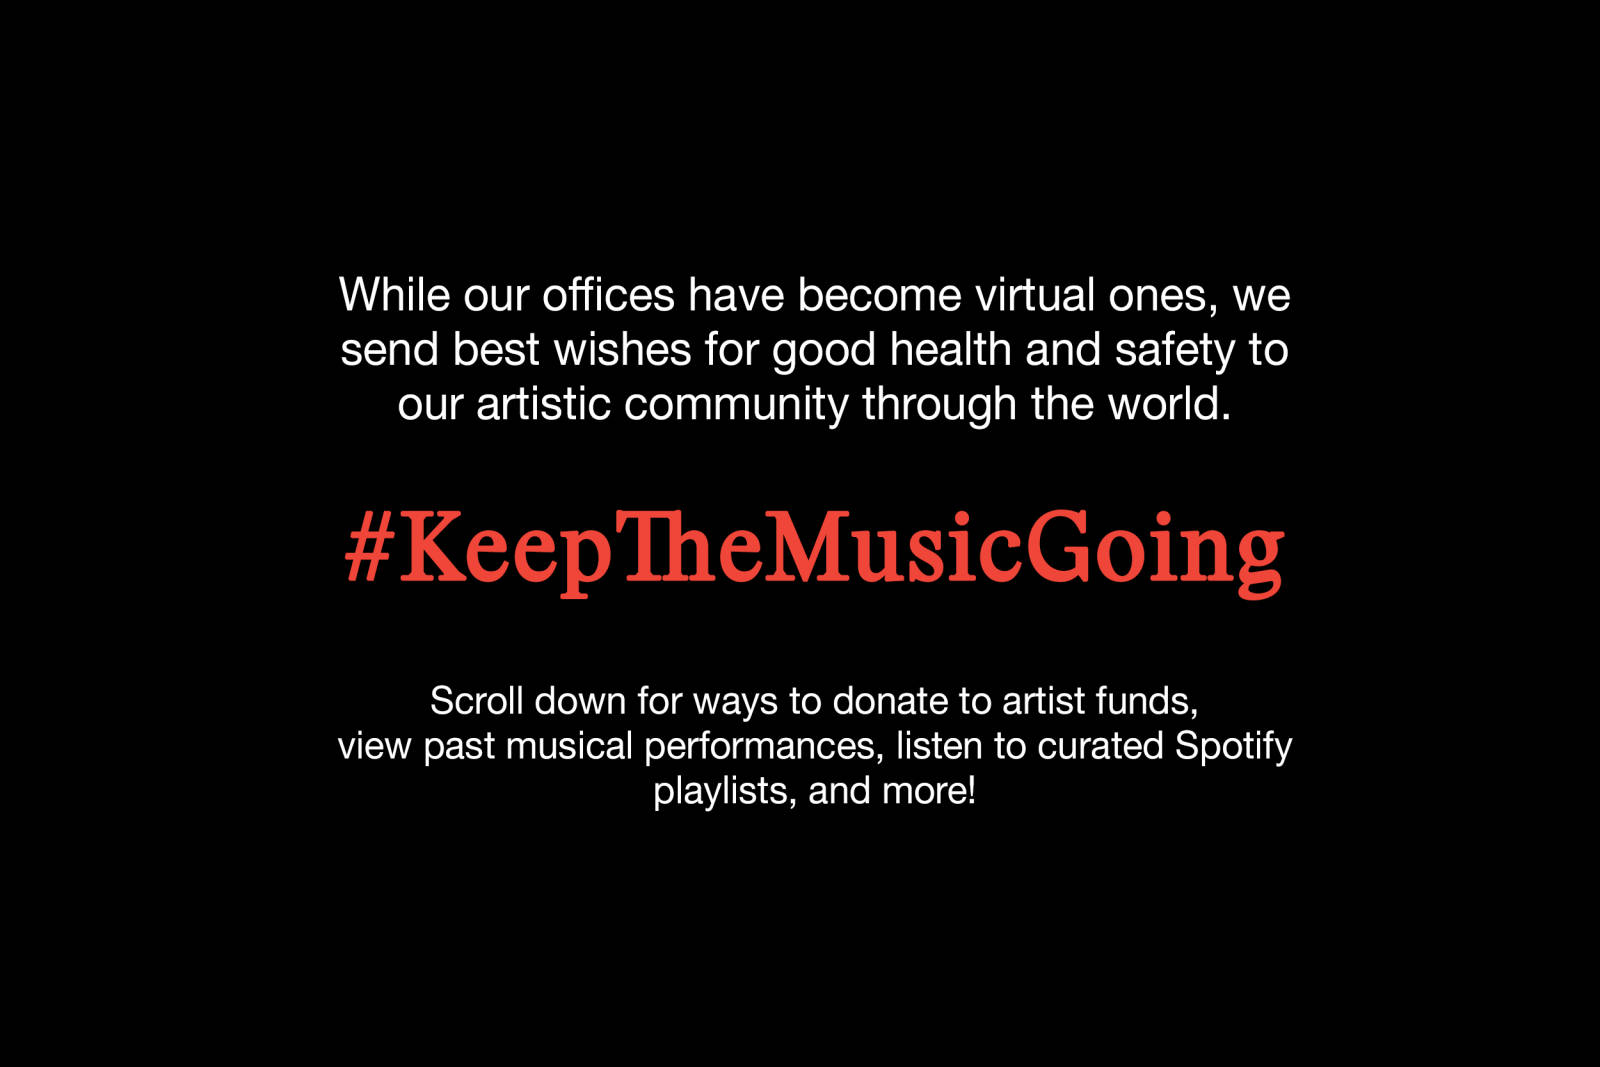 #KeepTheMusicGoing -